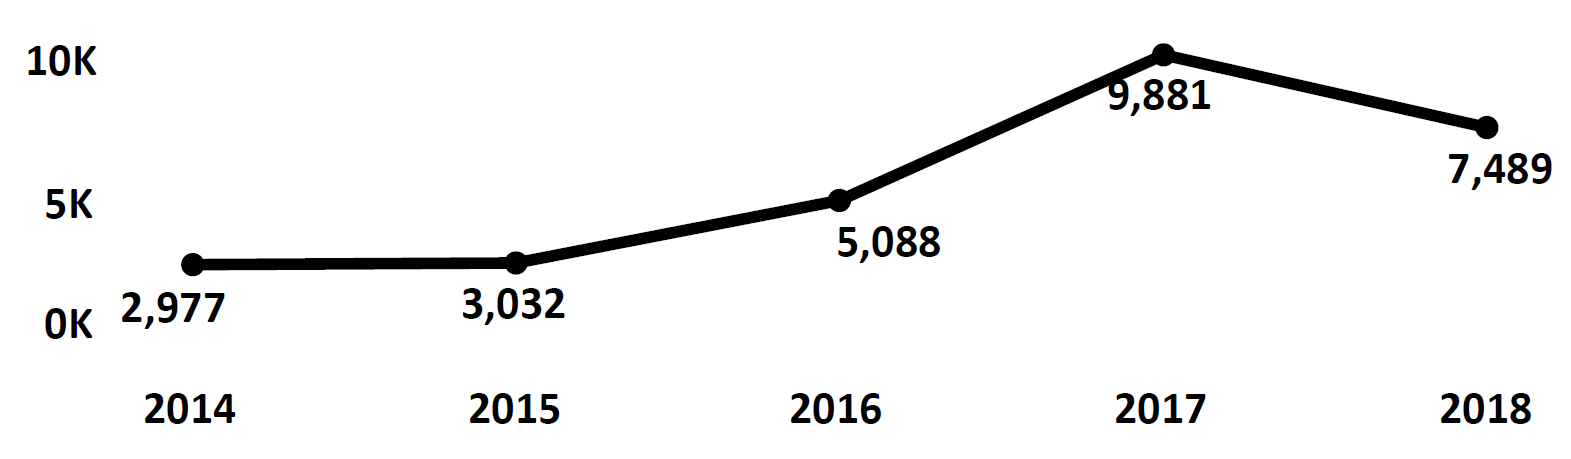 Graph of Do Not Call complaints recorded in North Dakota from fiscal year 2014 to fiscal year 2018. In 2014 there were 2,977 complaints filed, which increased each year peaking at 9,881 in 2017. In 2018 there were 7,489 complaints filed, fewer than 2017.